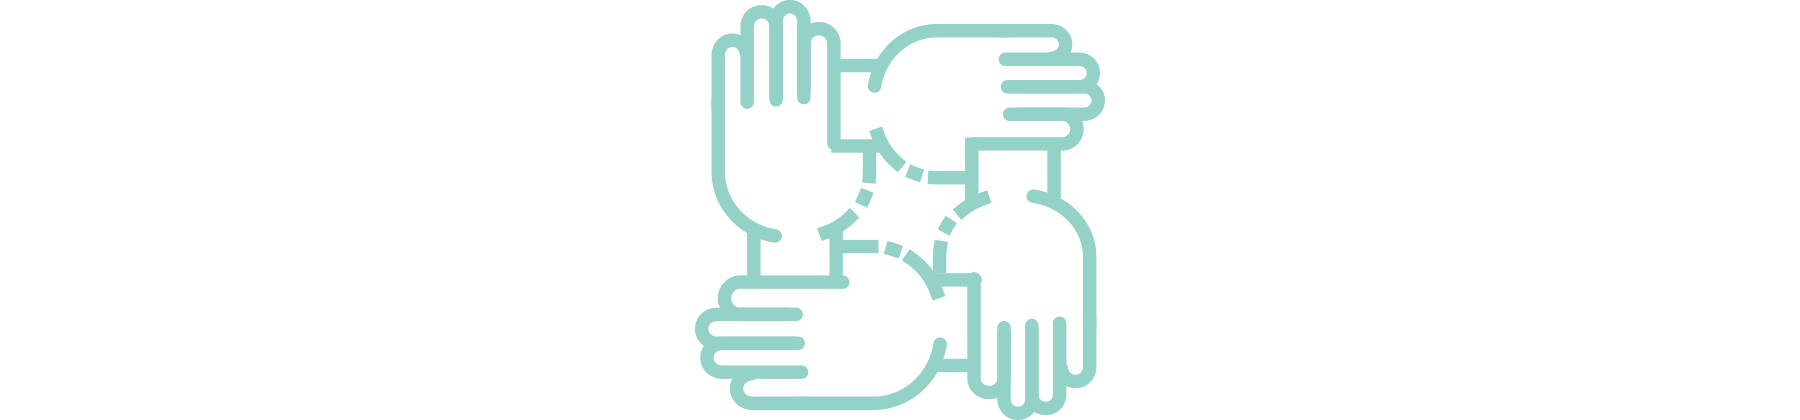 hands-icon.png